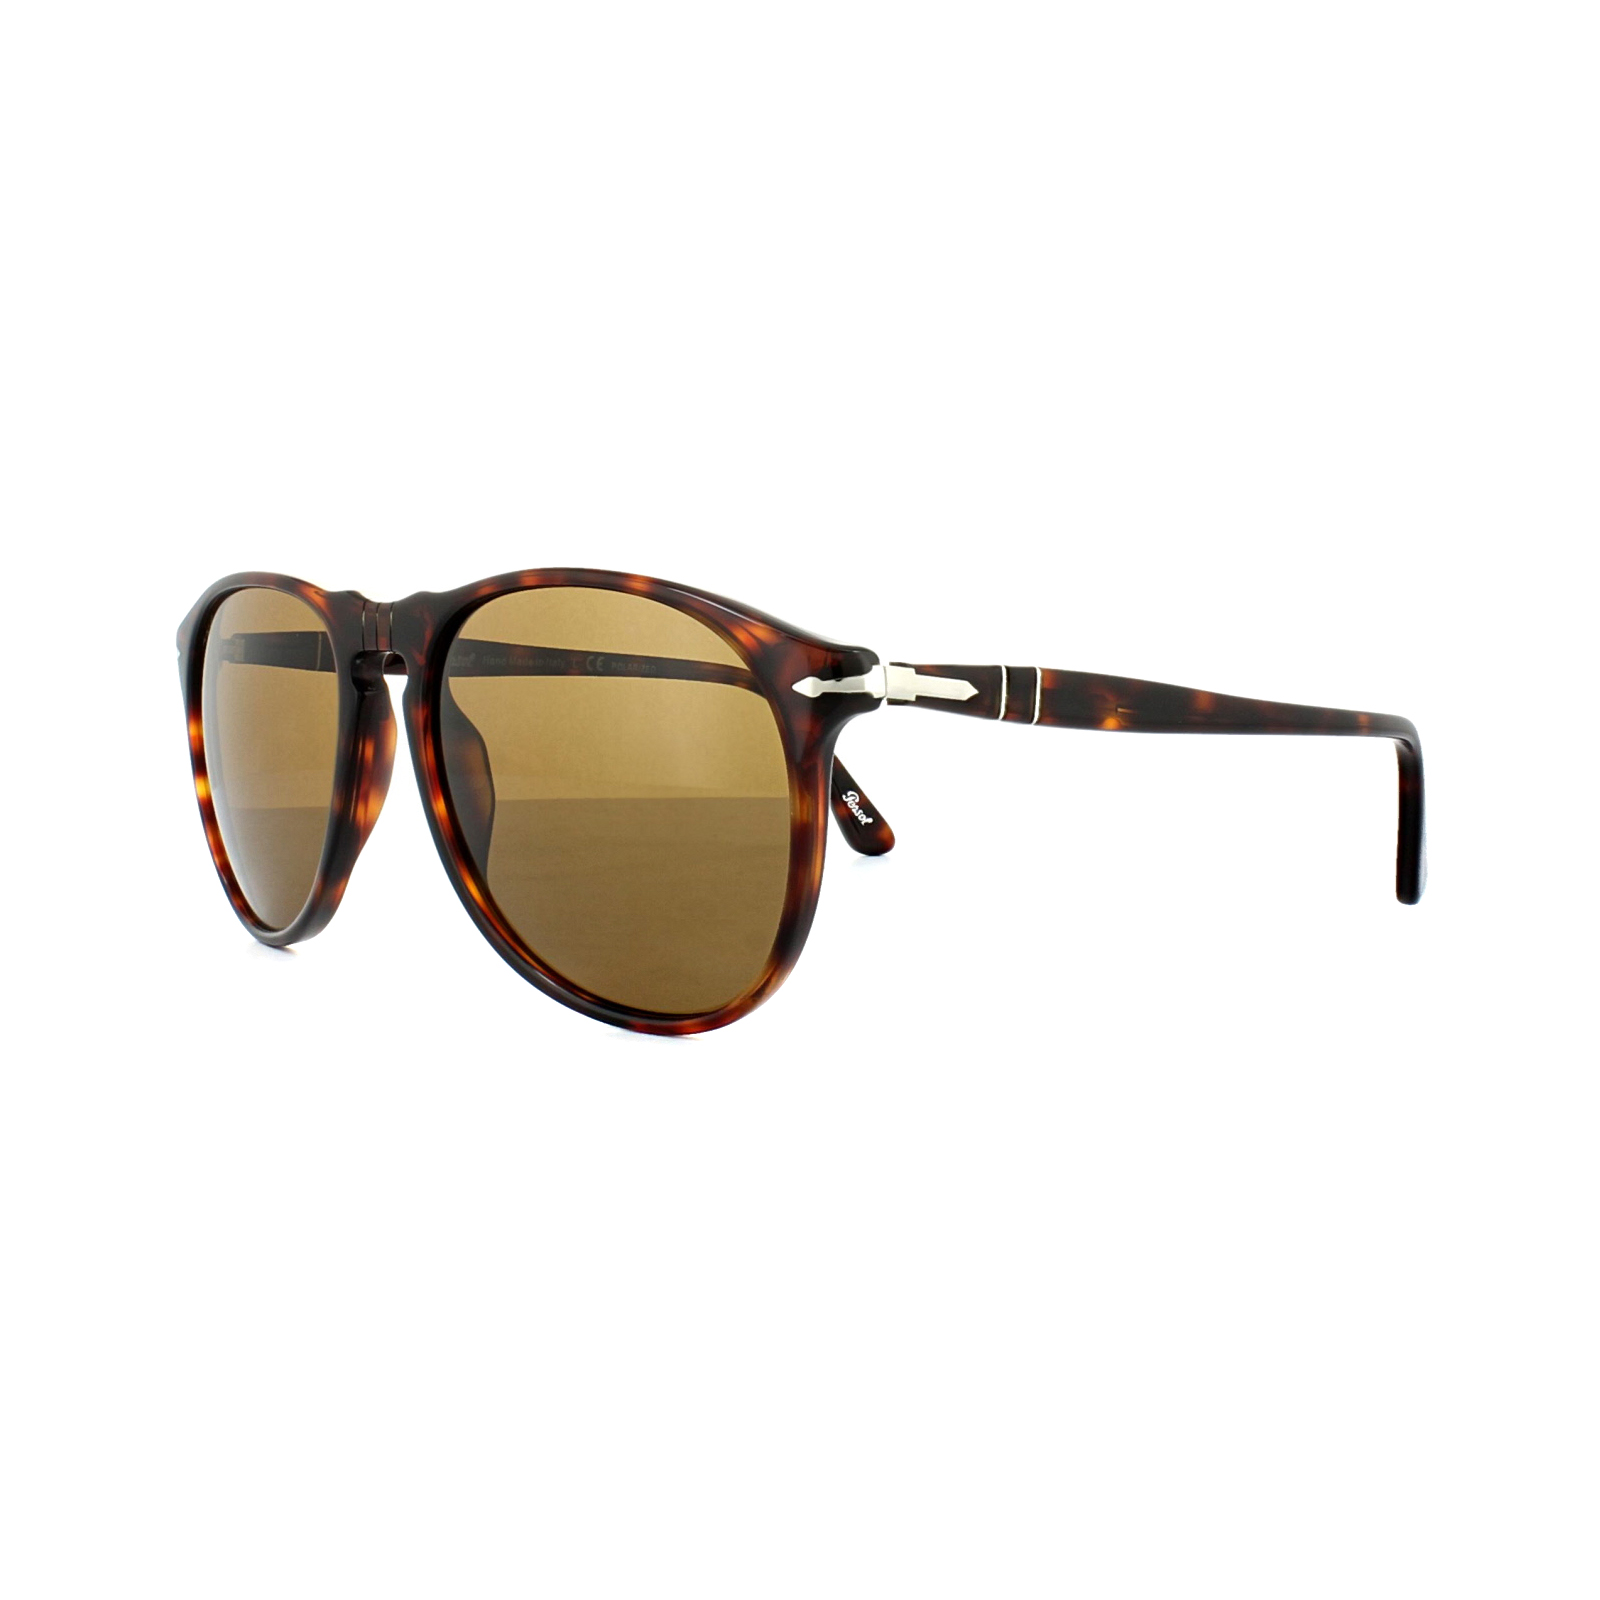 e72a06b6a44d1 Sentinel Persol Sunglasses 9649 24 57 Havana Crystal Brown Polarized